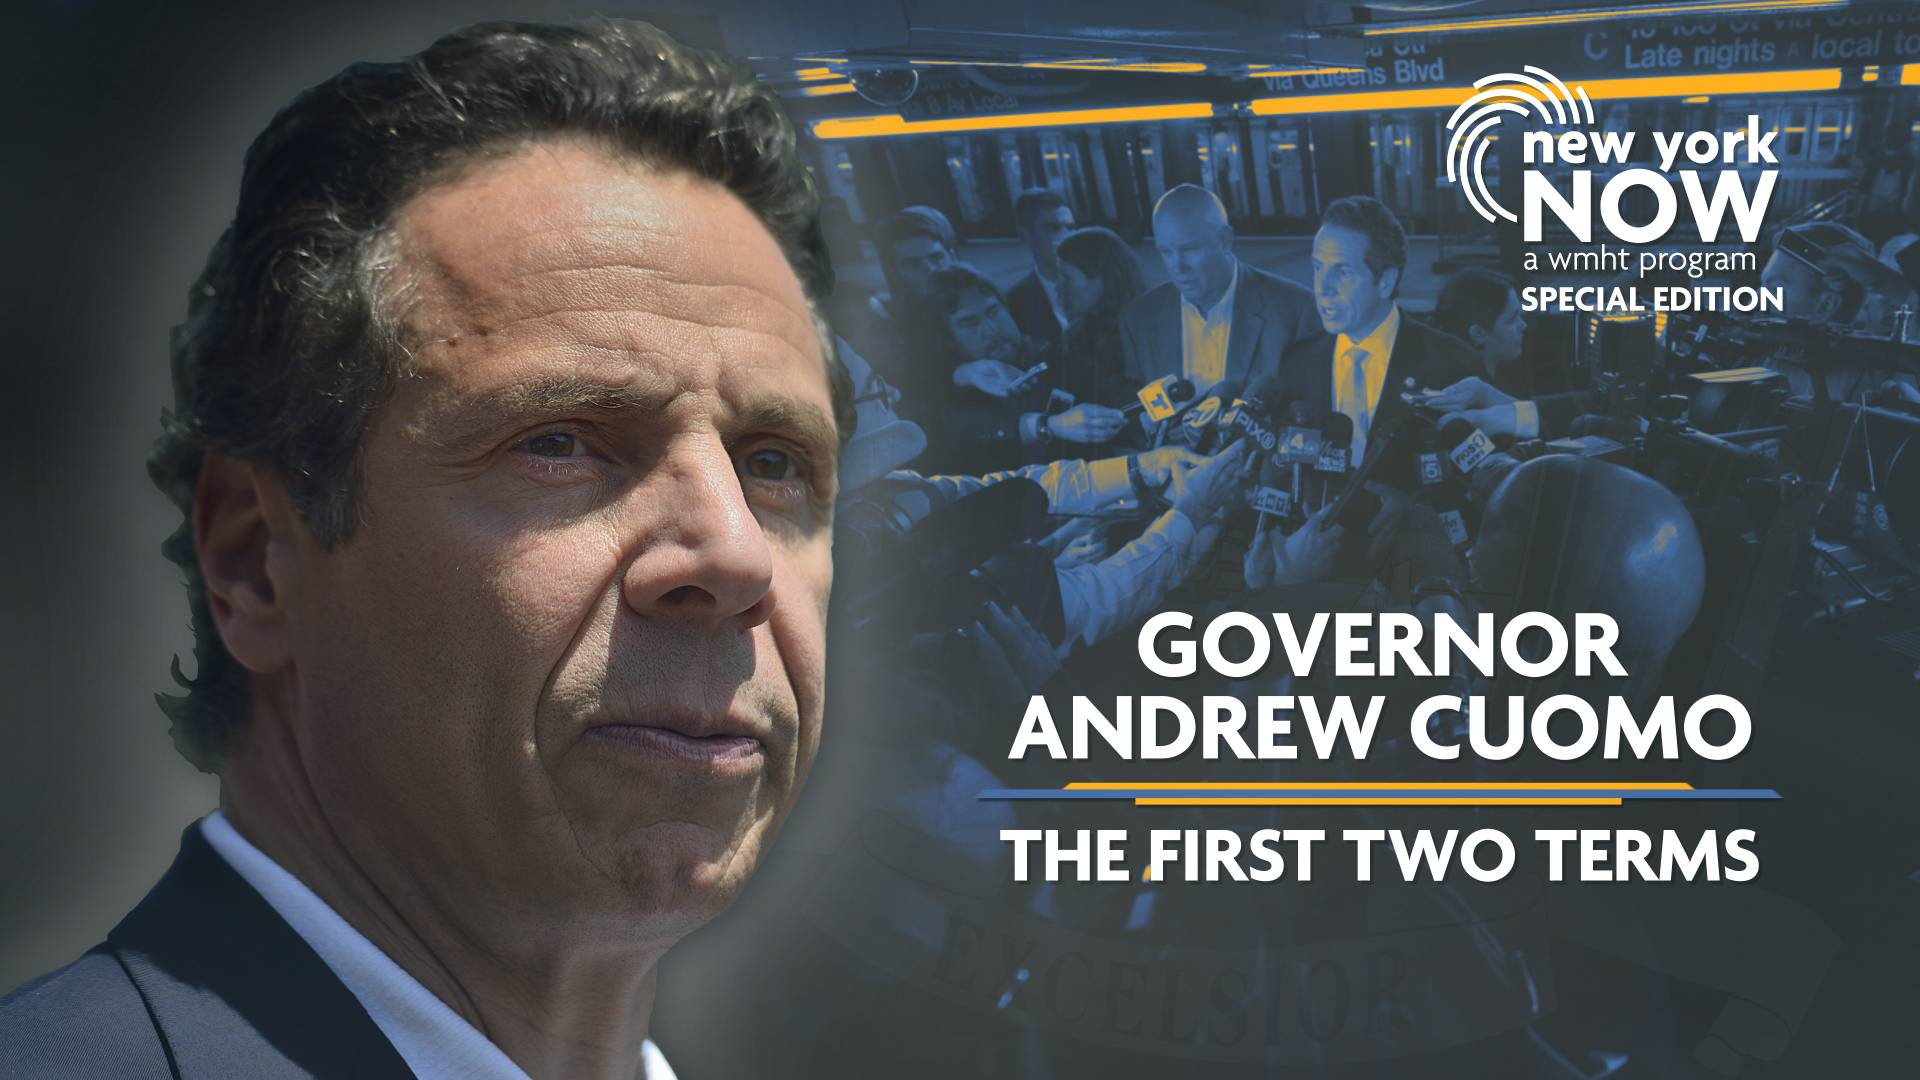 WATCH our documentary on Andrew Cuomo